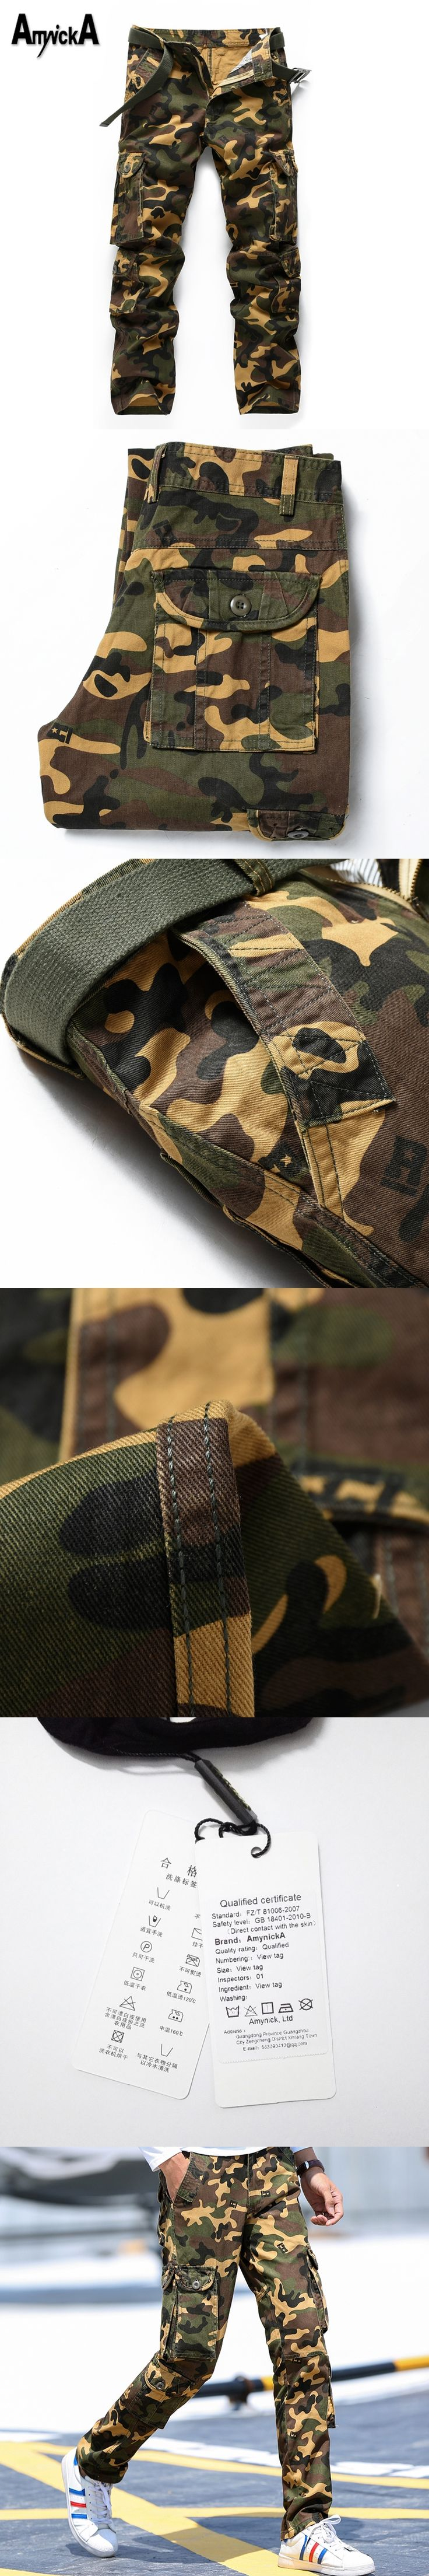 AmynickA Military camouflage Pants Mens Militar Tactical Cargo Pants Outdoor Pants Army Sport Pants Men Hiking Hunting LDS672